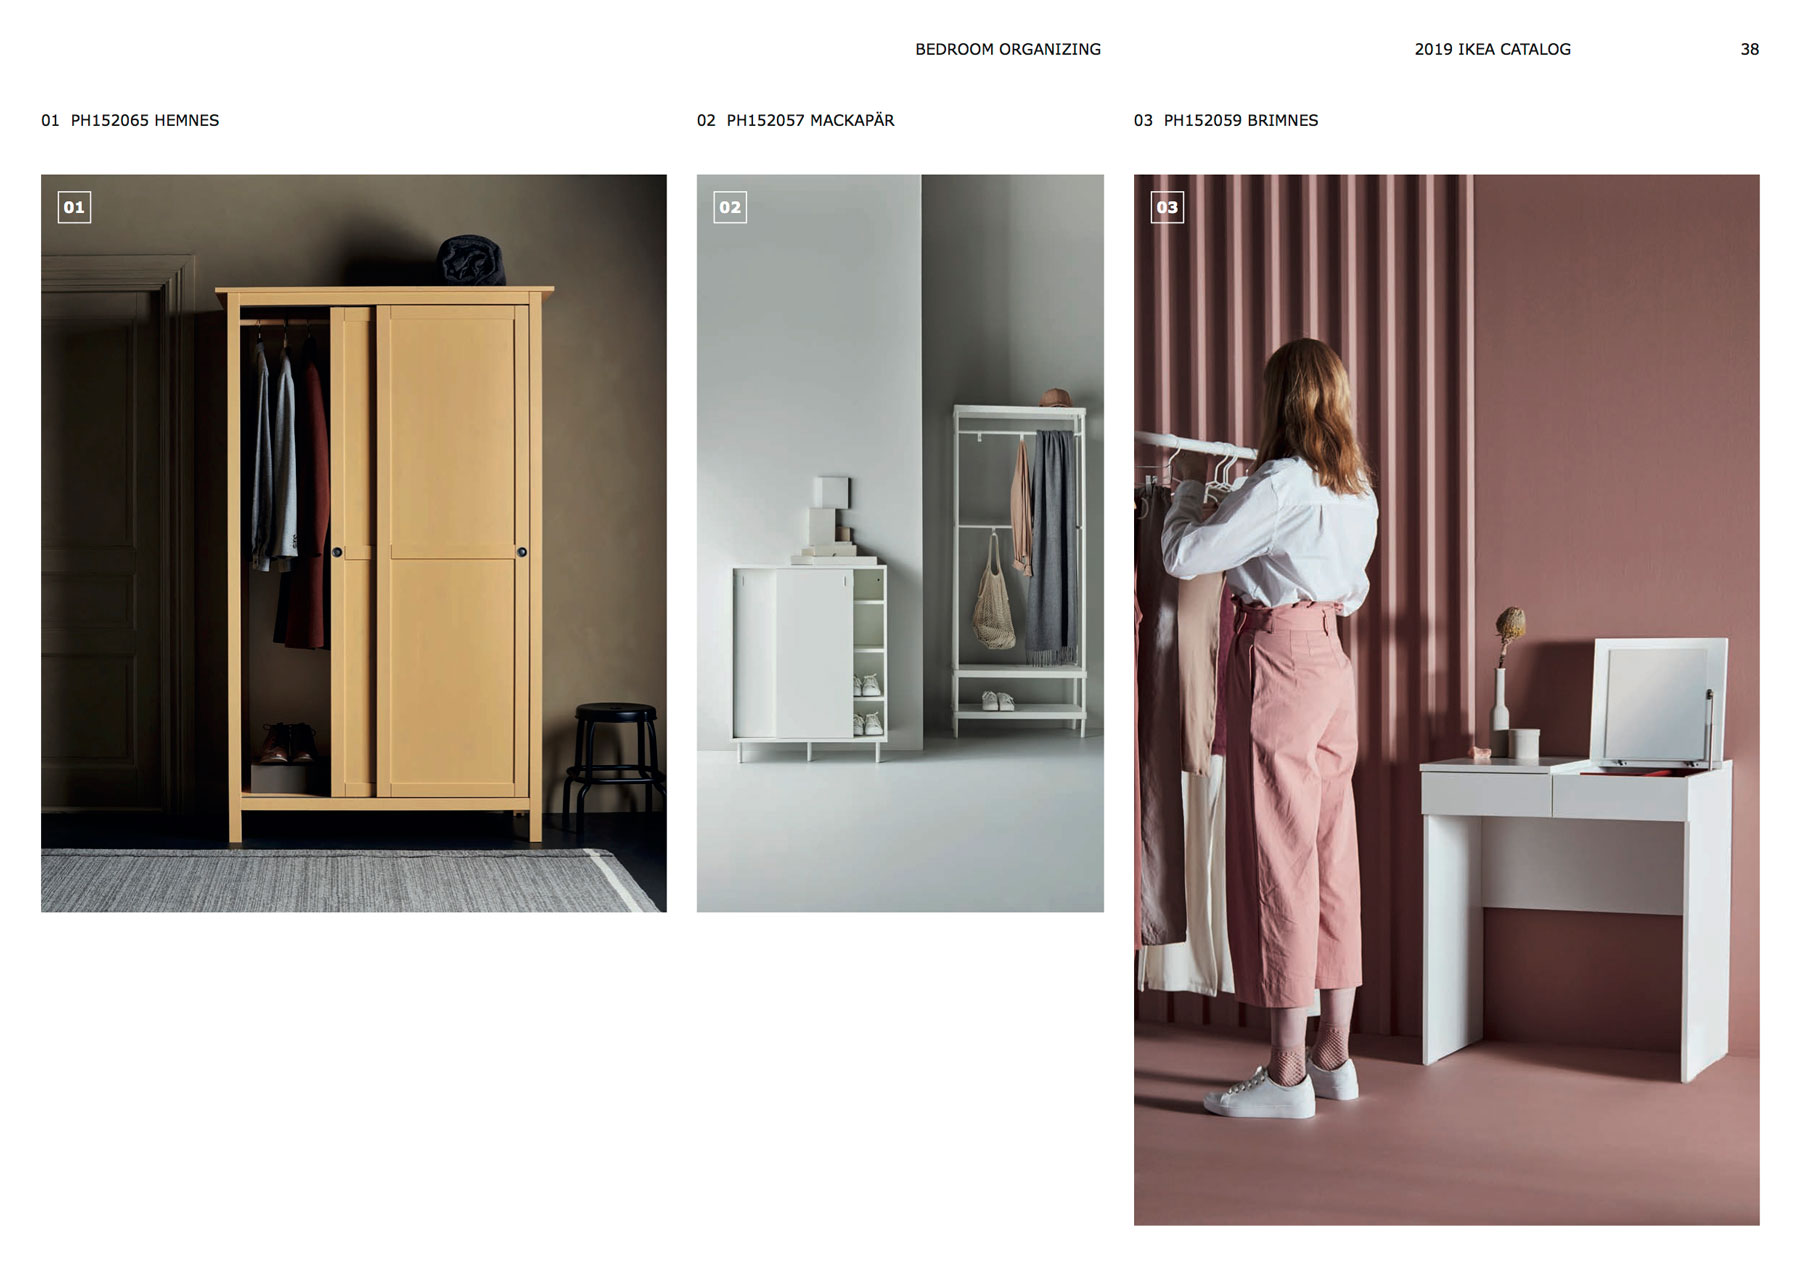 7 Major Design Trends According To The Ikea Catalog 2019 Real Simple